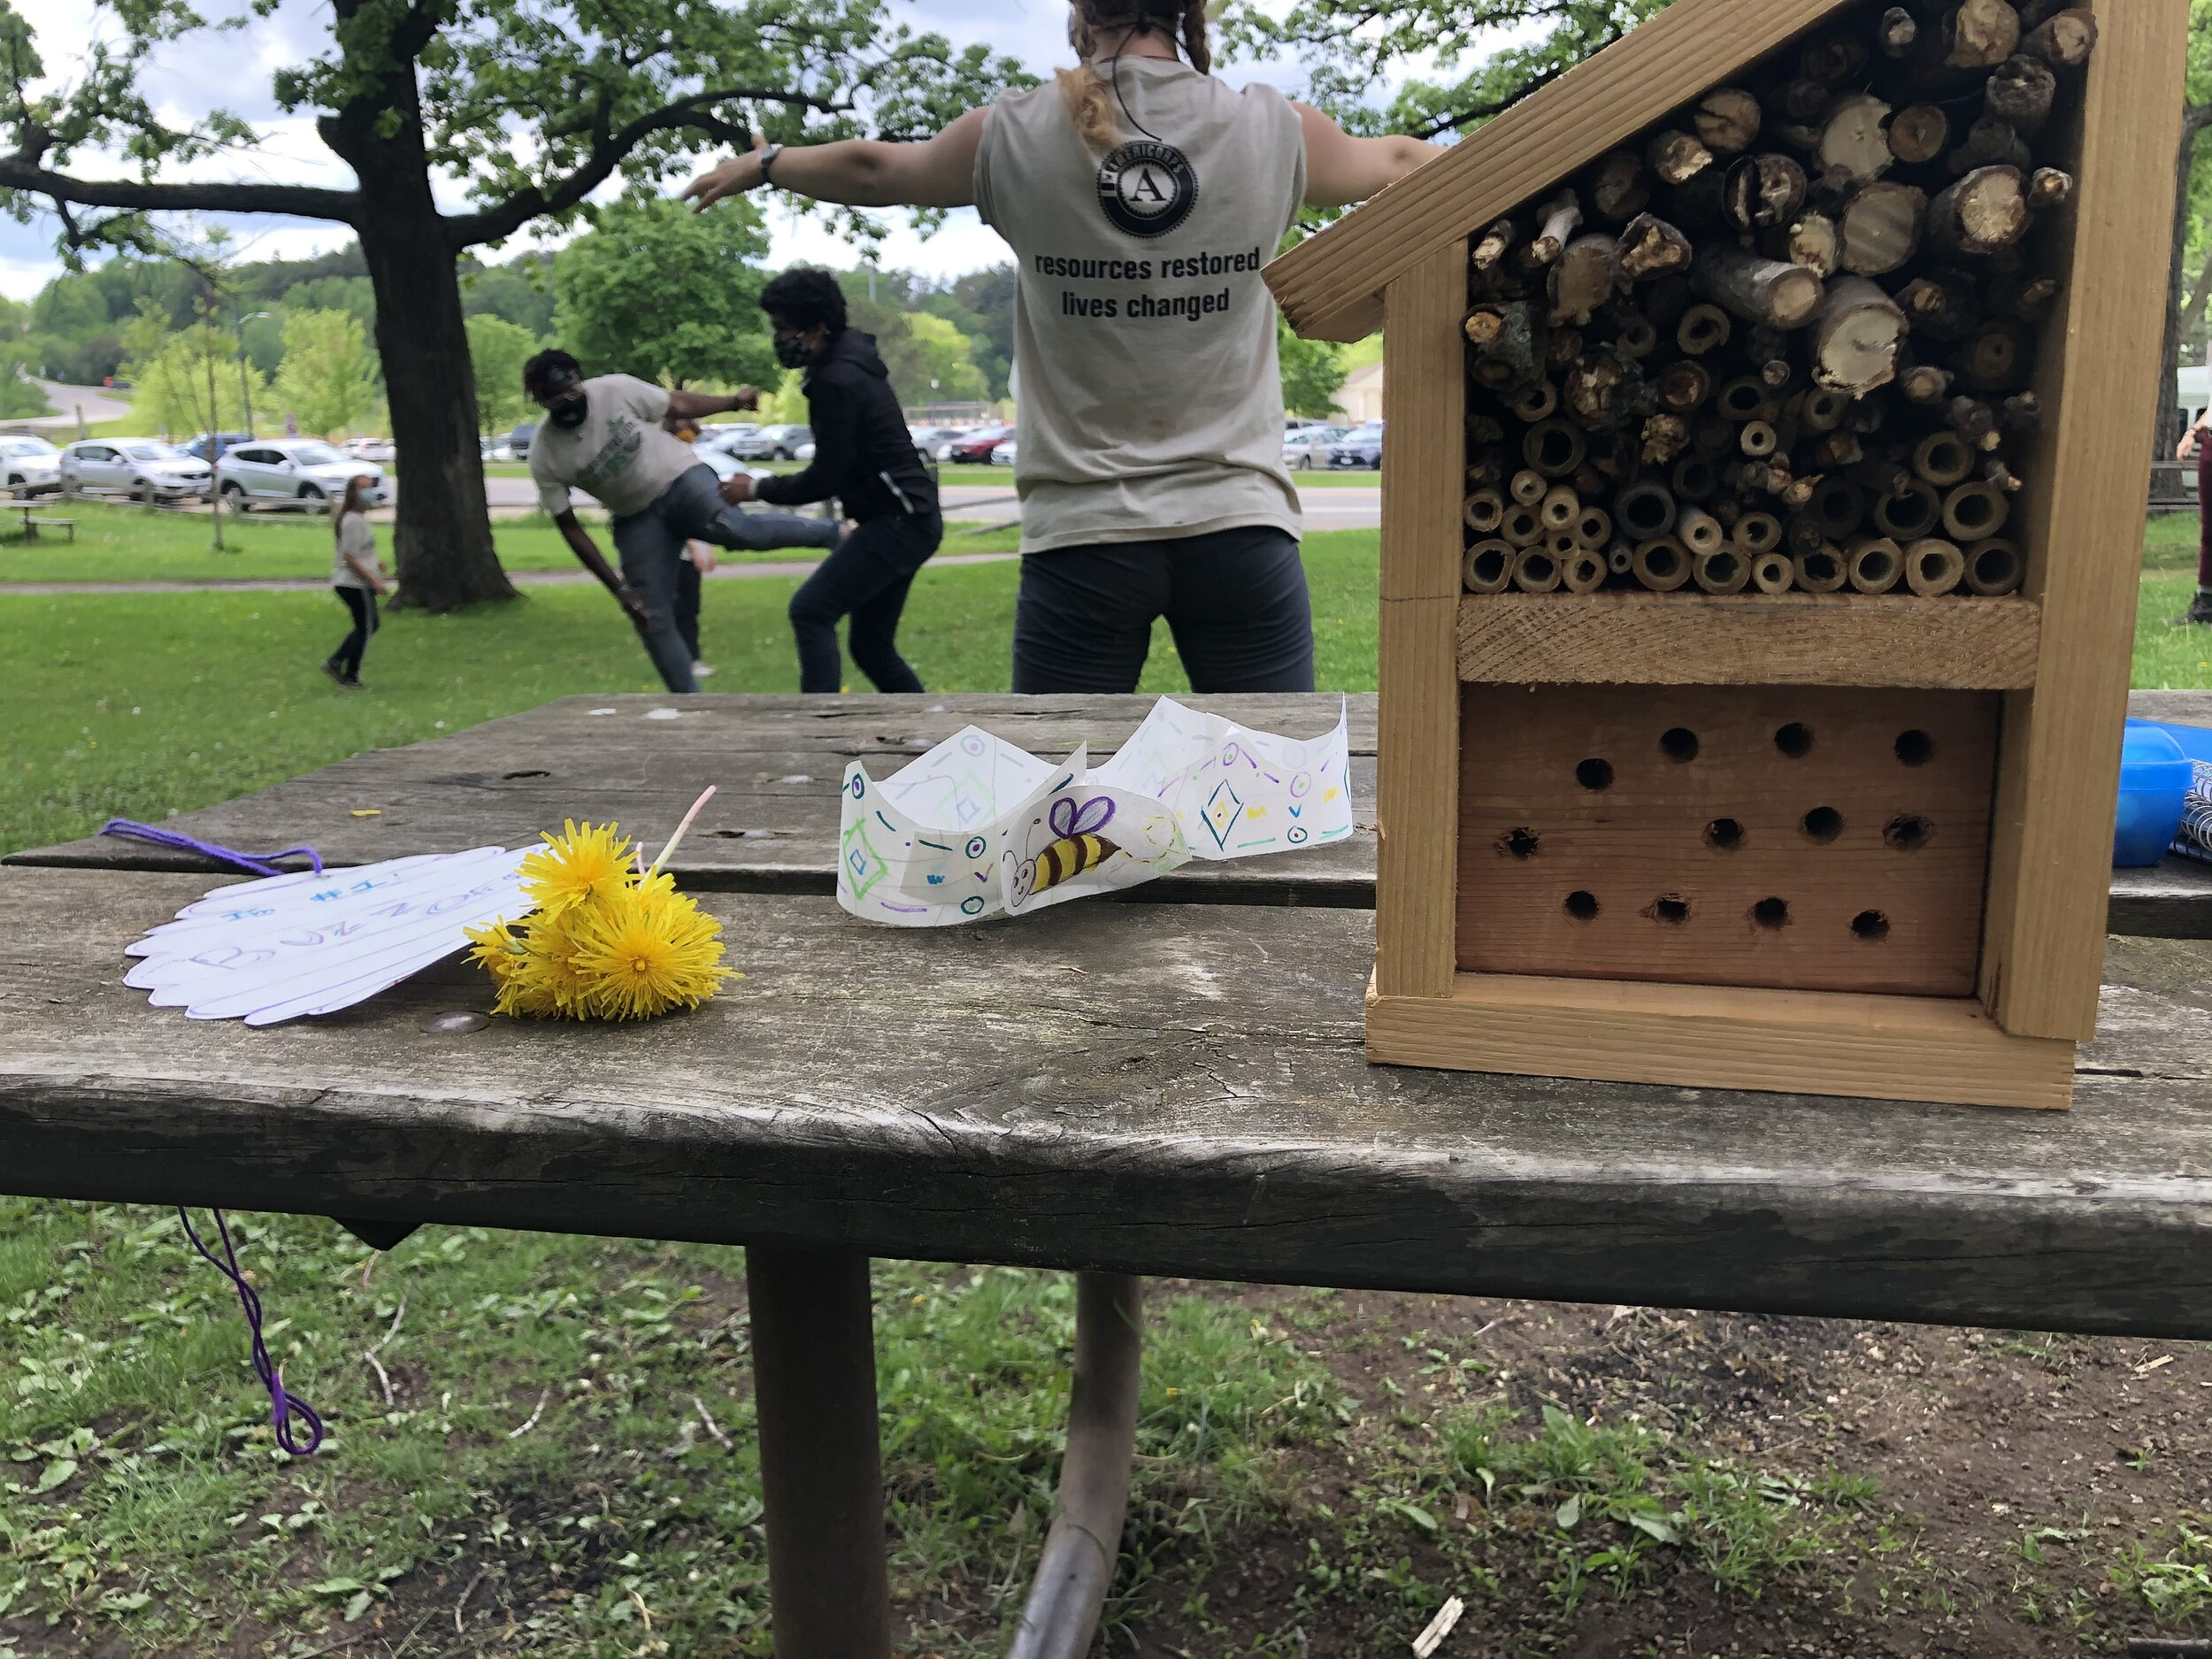 Youth playing a game of Buzzzzz in the background- where everyone is a Bee and if you are stung, or tagged, you are out. In the foreground sits our bee motel, paper bee crown, dandelion bouquet, and hive medal for the Bee Olympics winner.